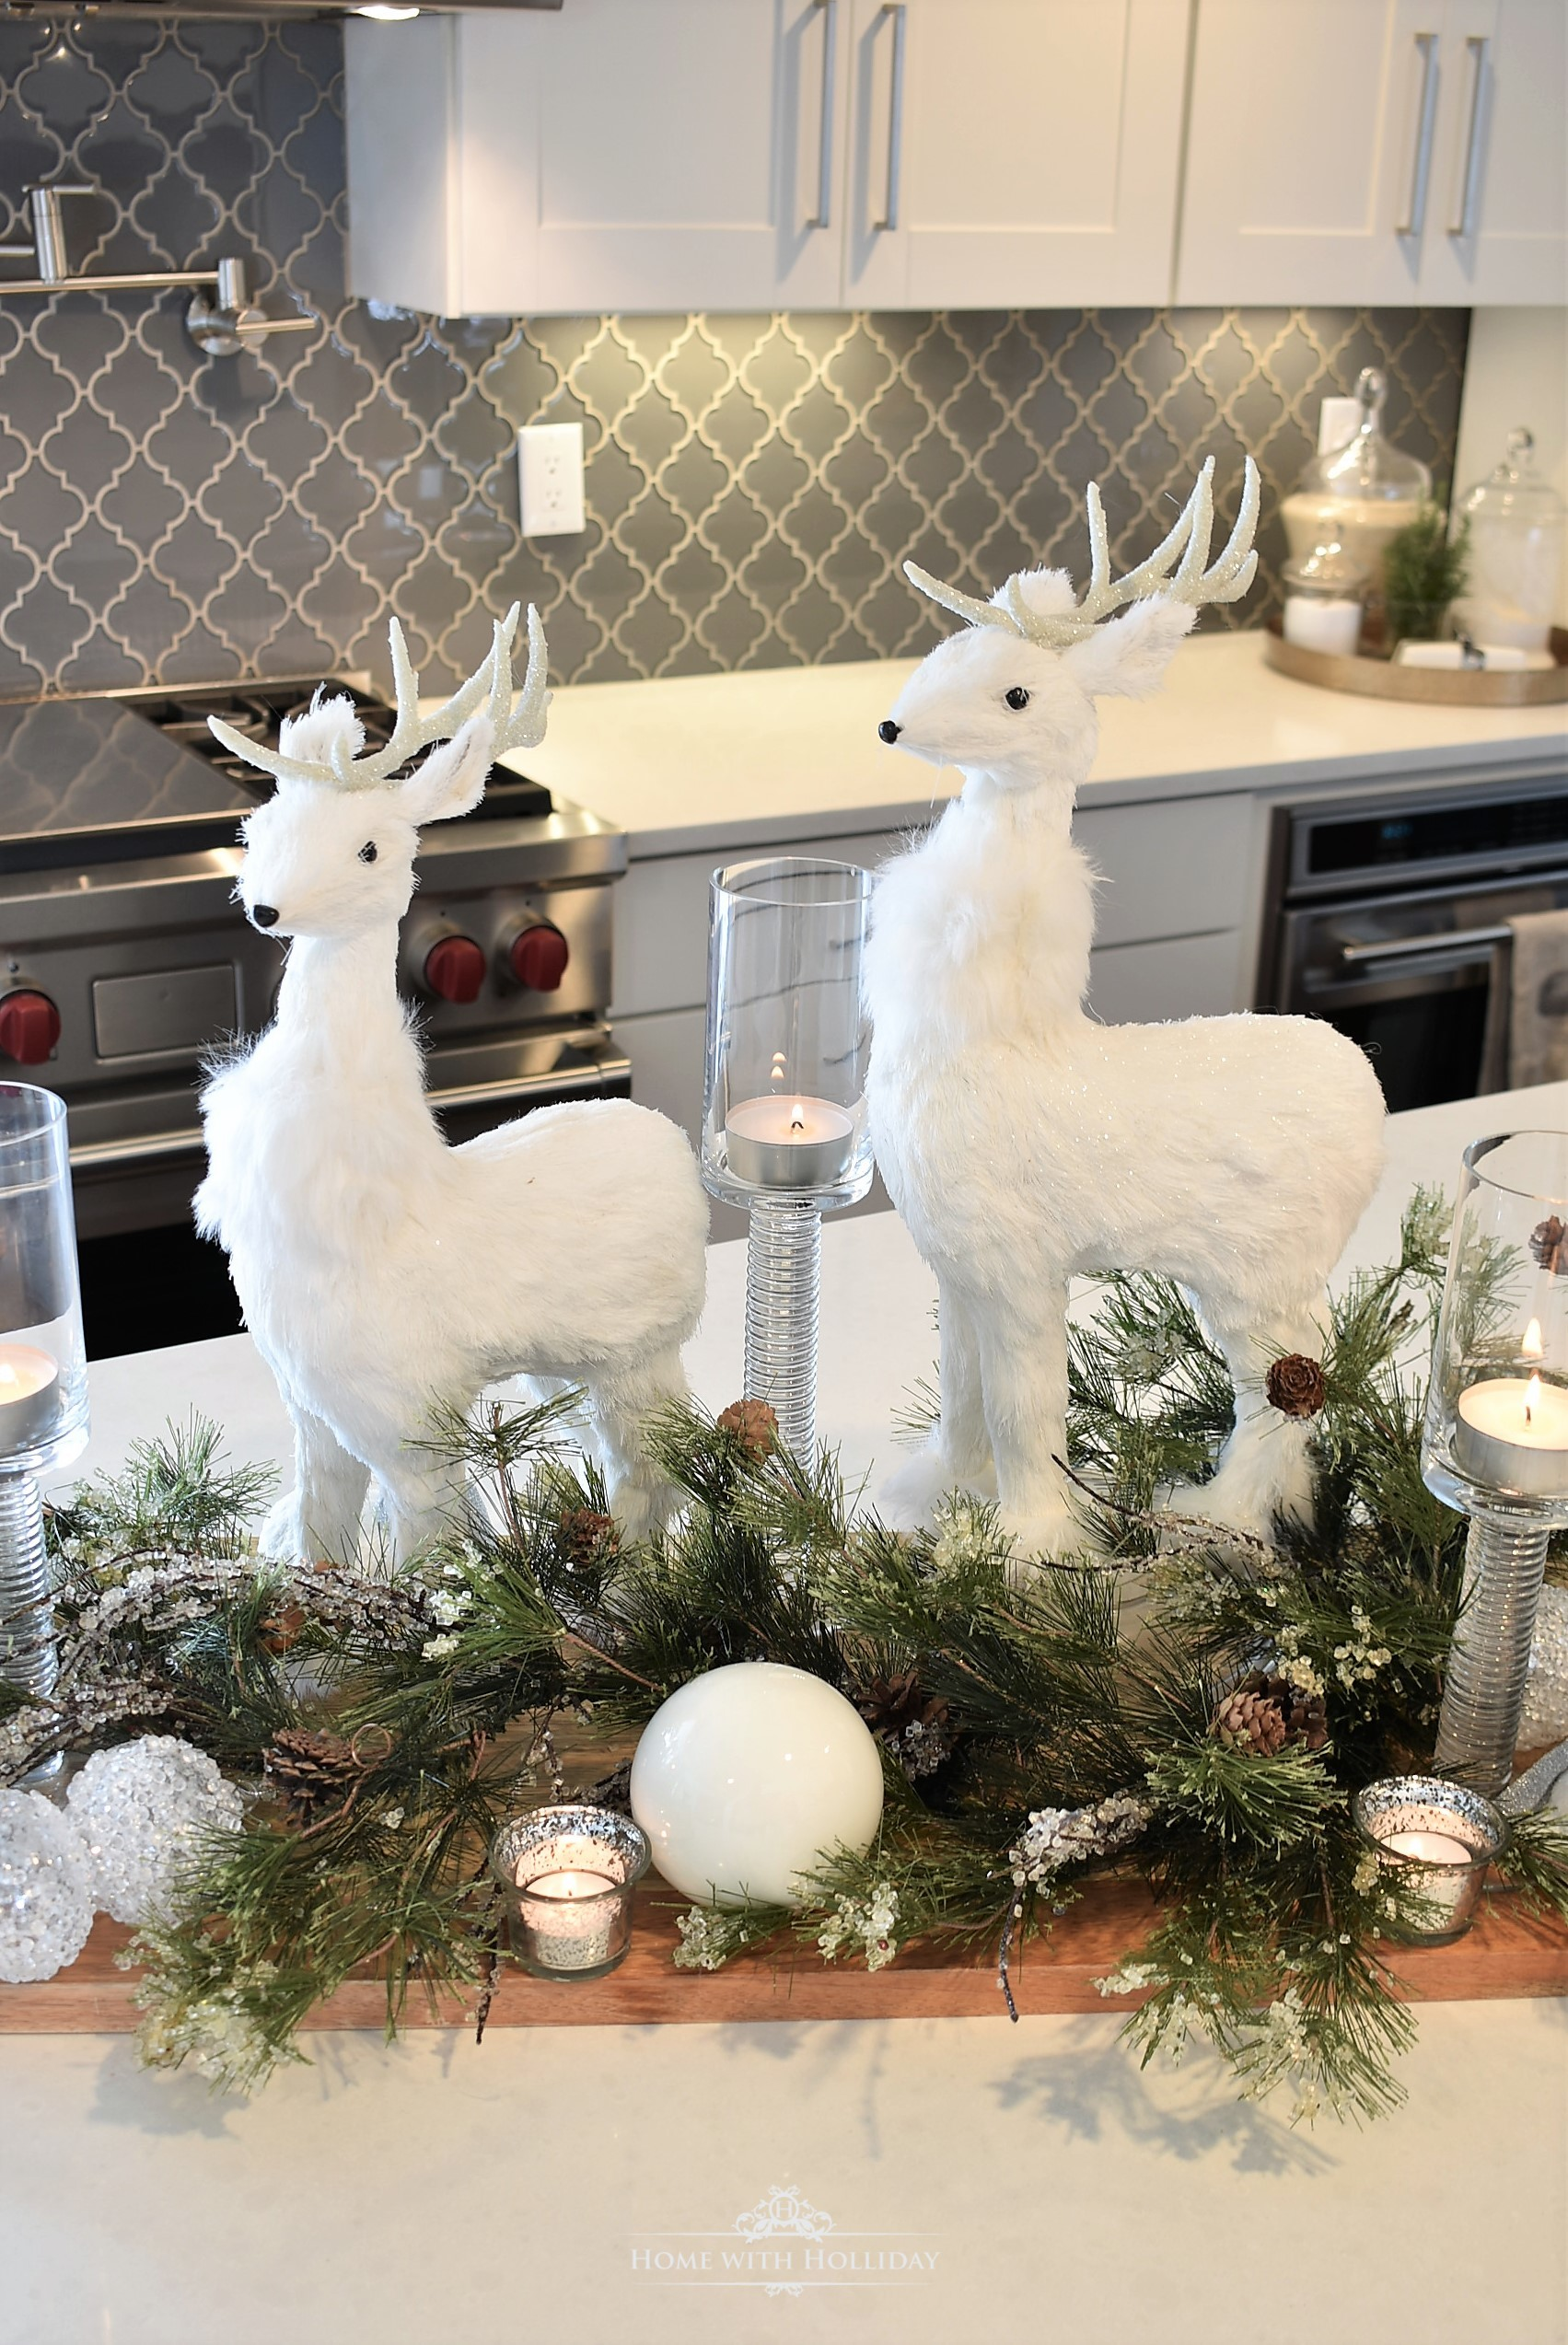 My Christmas Home Tour - Winter White Christmas Centerpiece - Home with Holliday